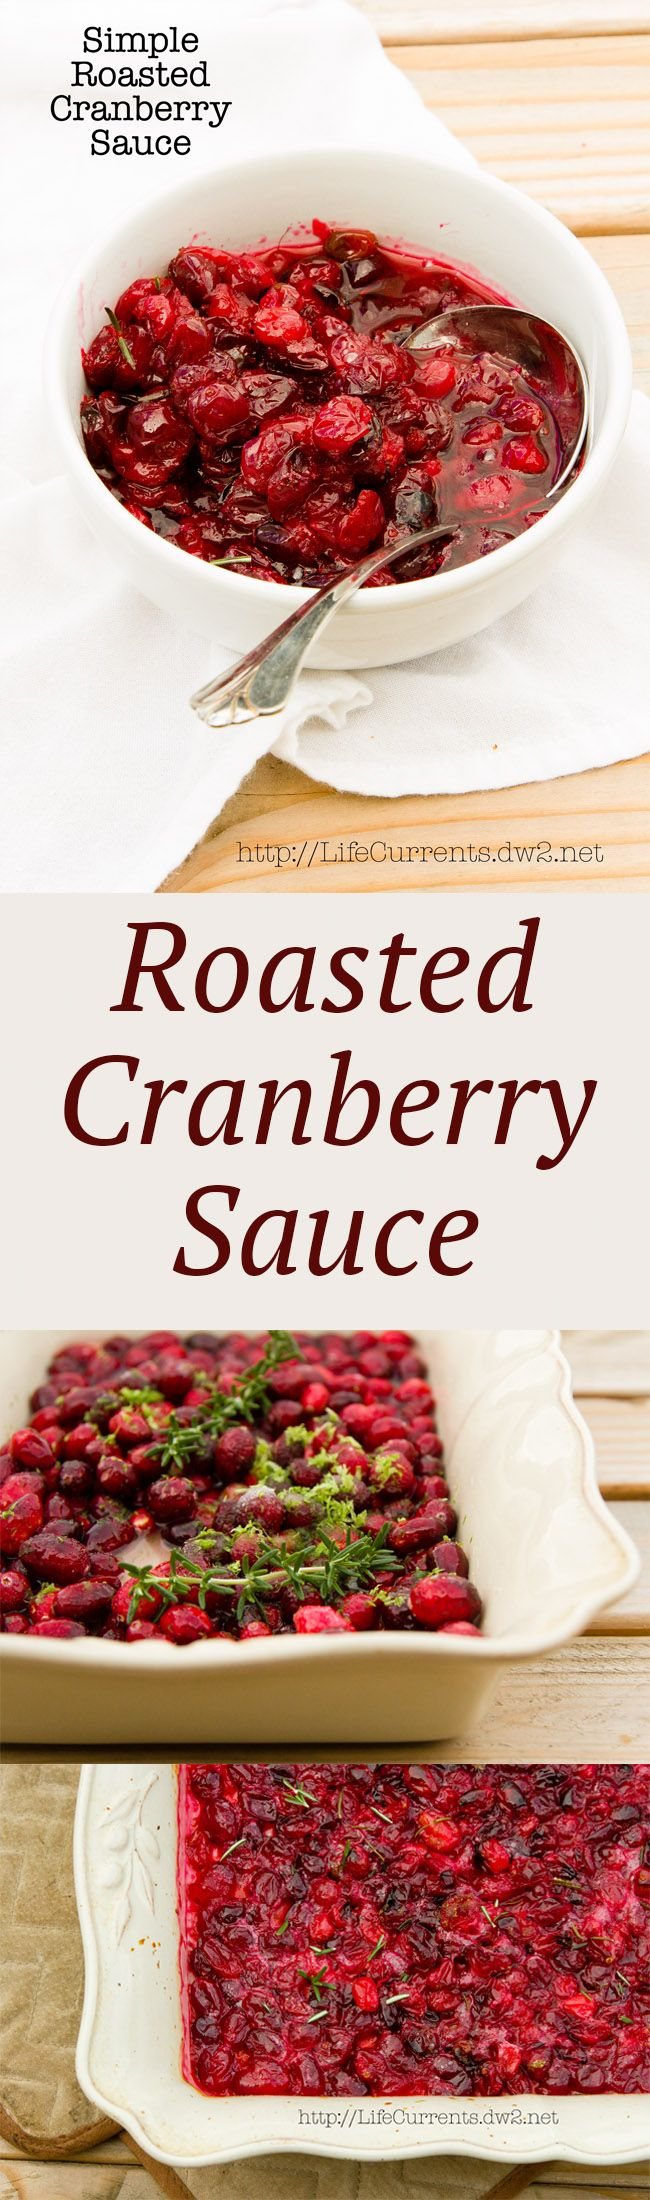 So simple to make, Roasted Cranberry Sauce is my favorite way to make Cranberry Sauce, and it's so delicious!